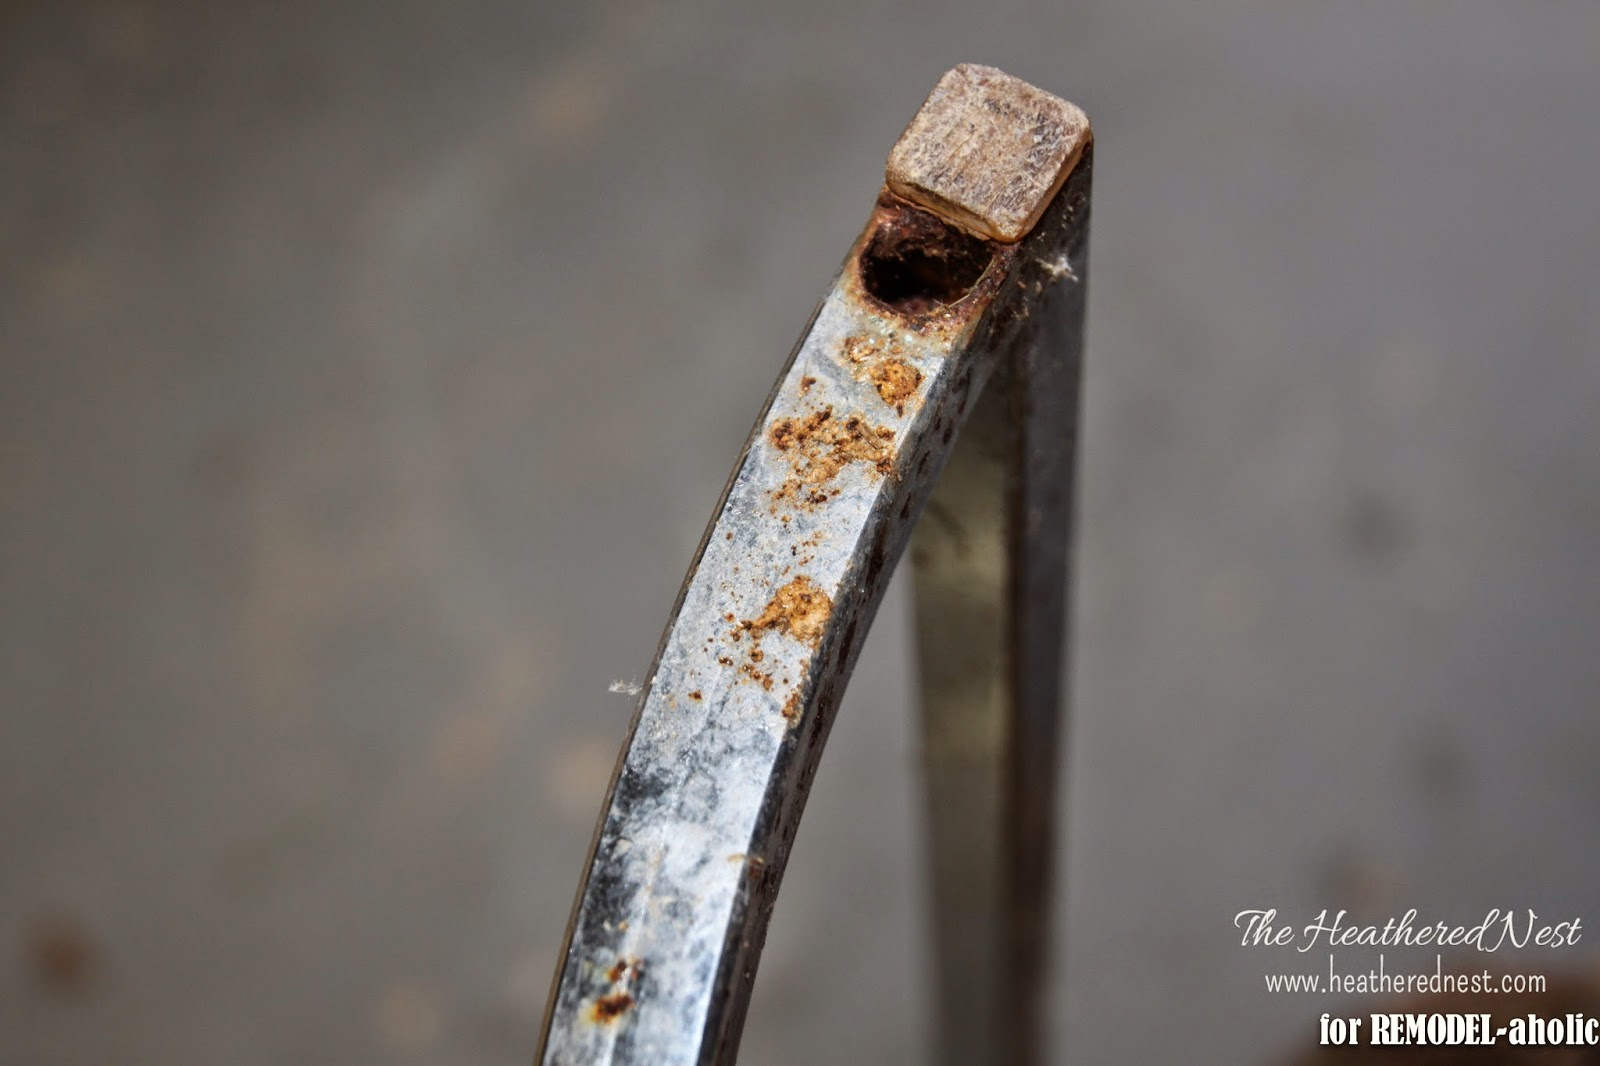 Remodelaholic how to restore rusty chrome how to repair and refinish a rusty chrome by the heathered nest featured on remodelaholic watchthetrailerfo